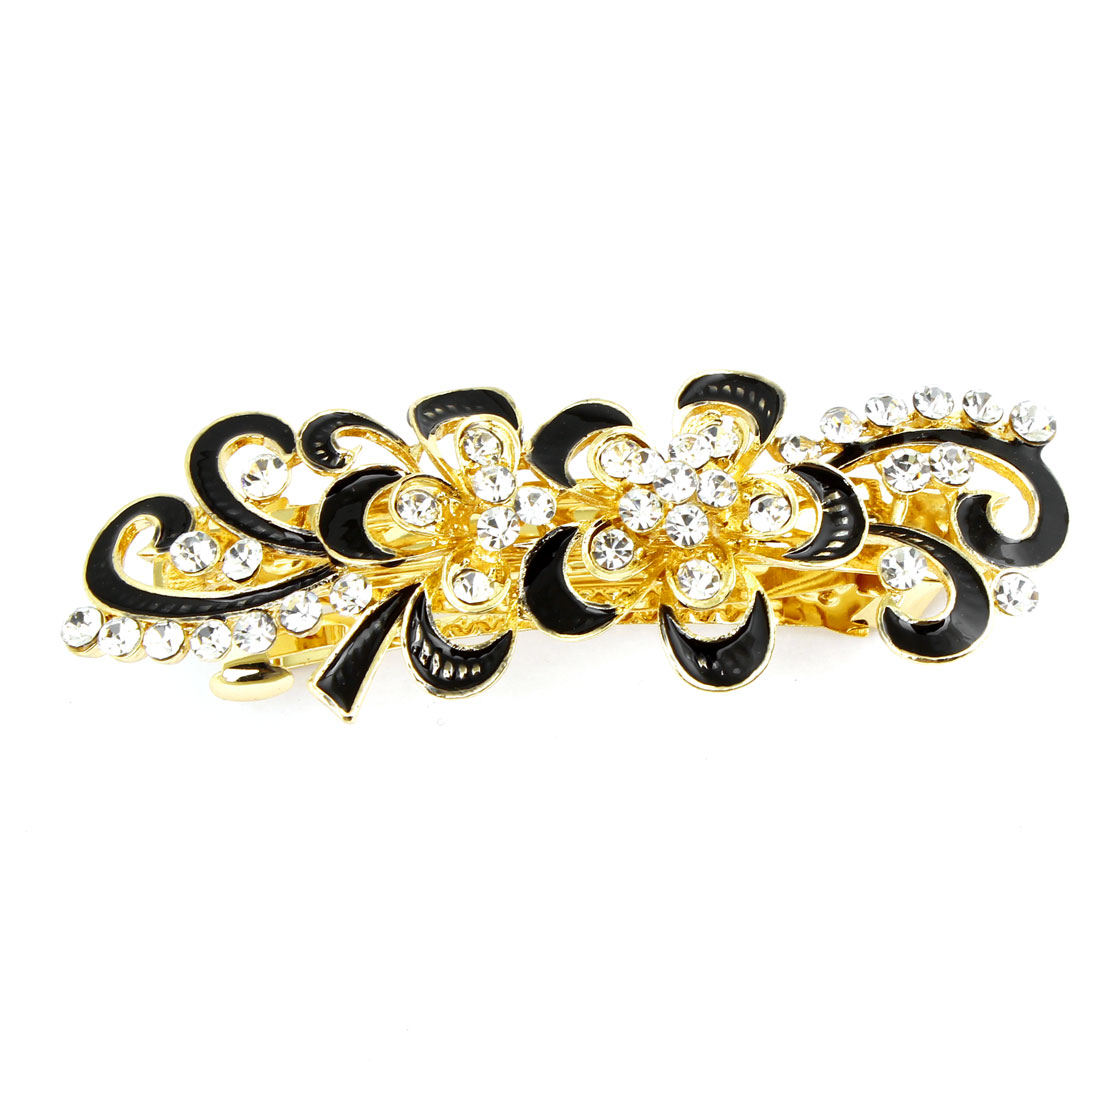 Shiny Rhinestones Detail Black Swirl Flower Hairclip French Clip